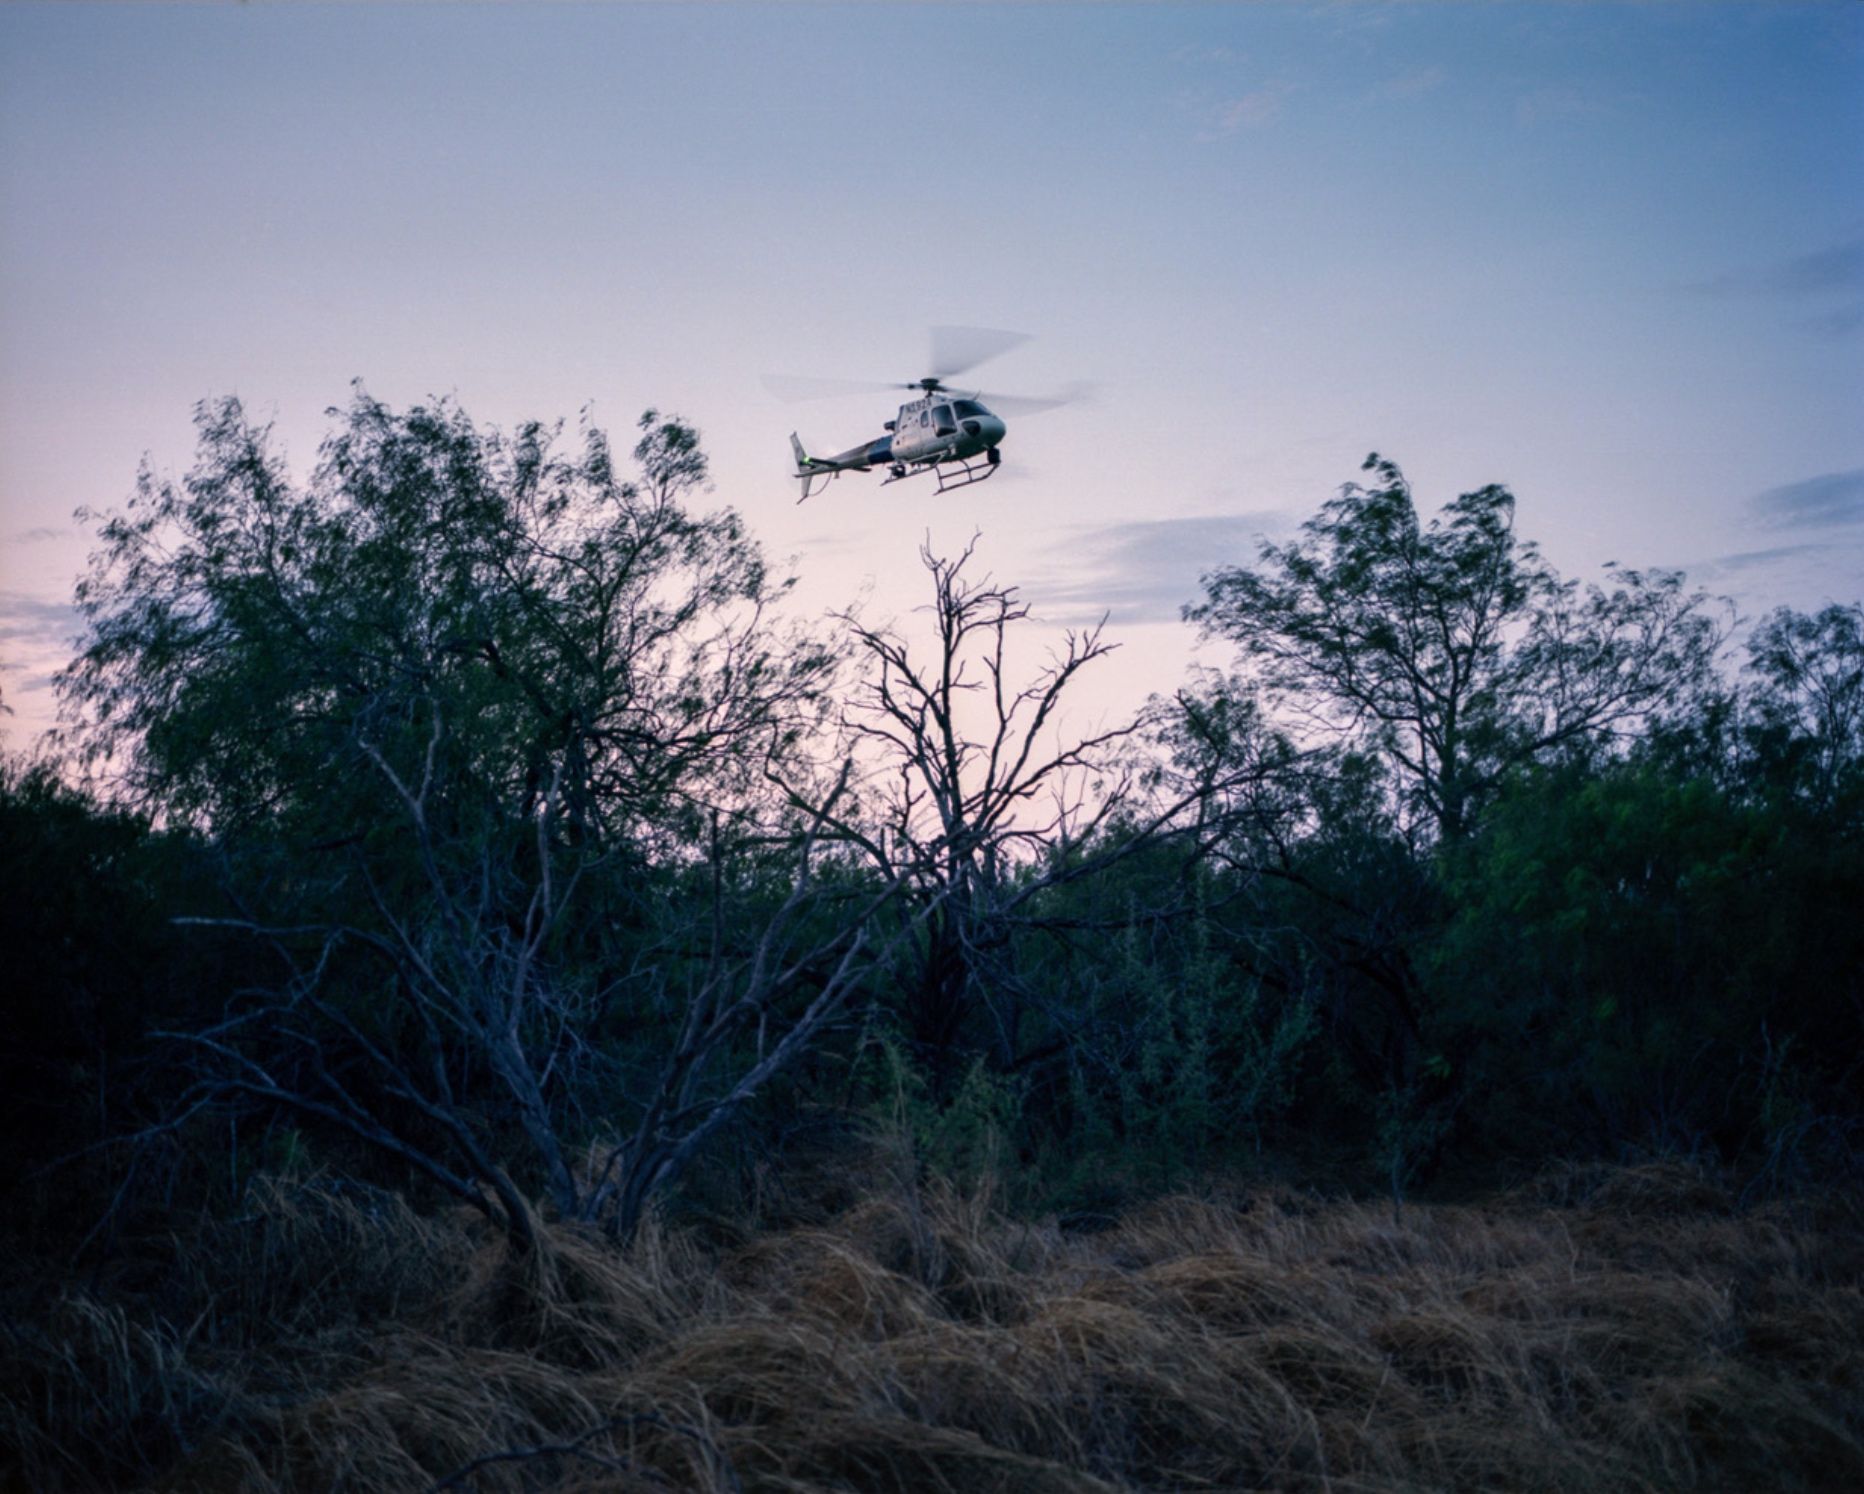 A US Border Patrol helicopter searches the brush for two men who were spotted by agents. They were never found.